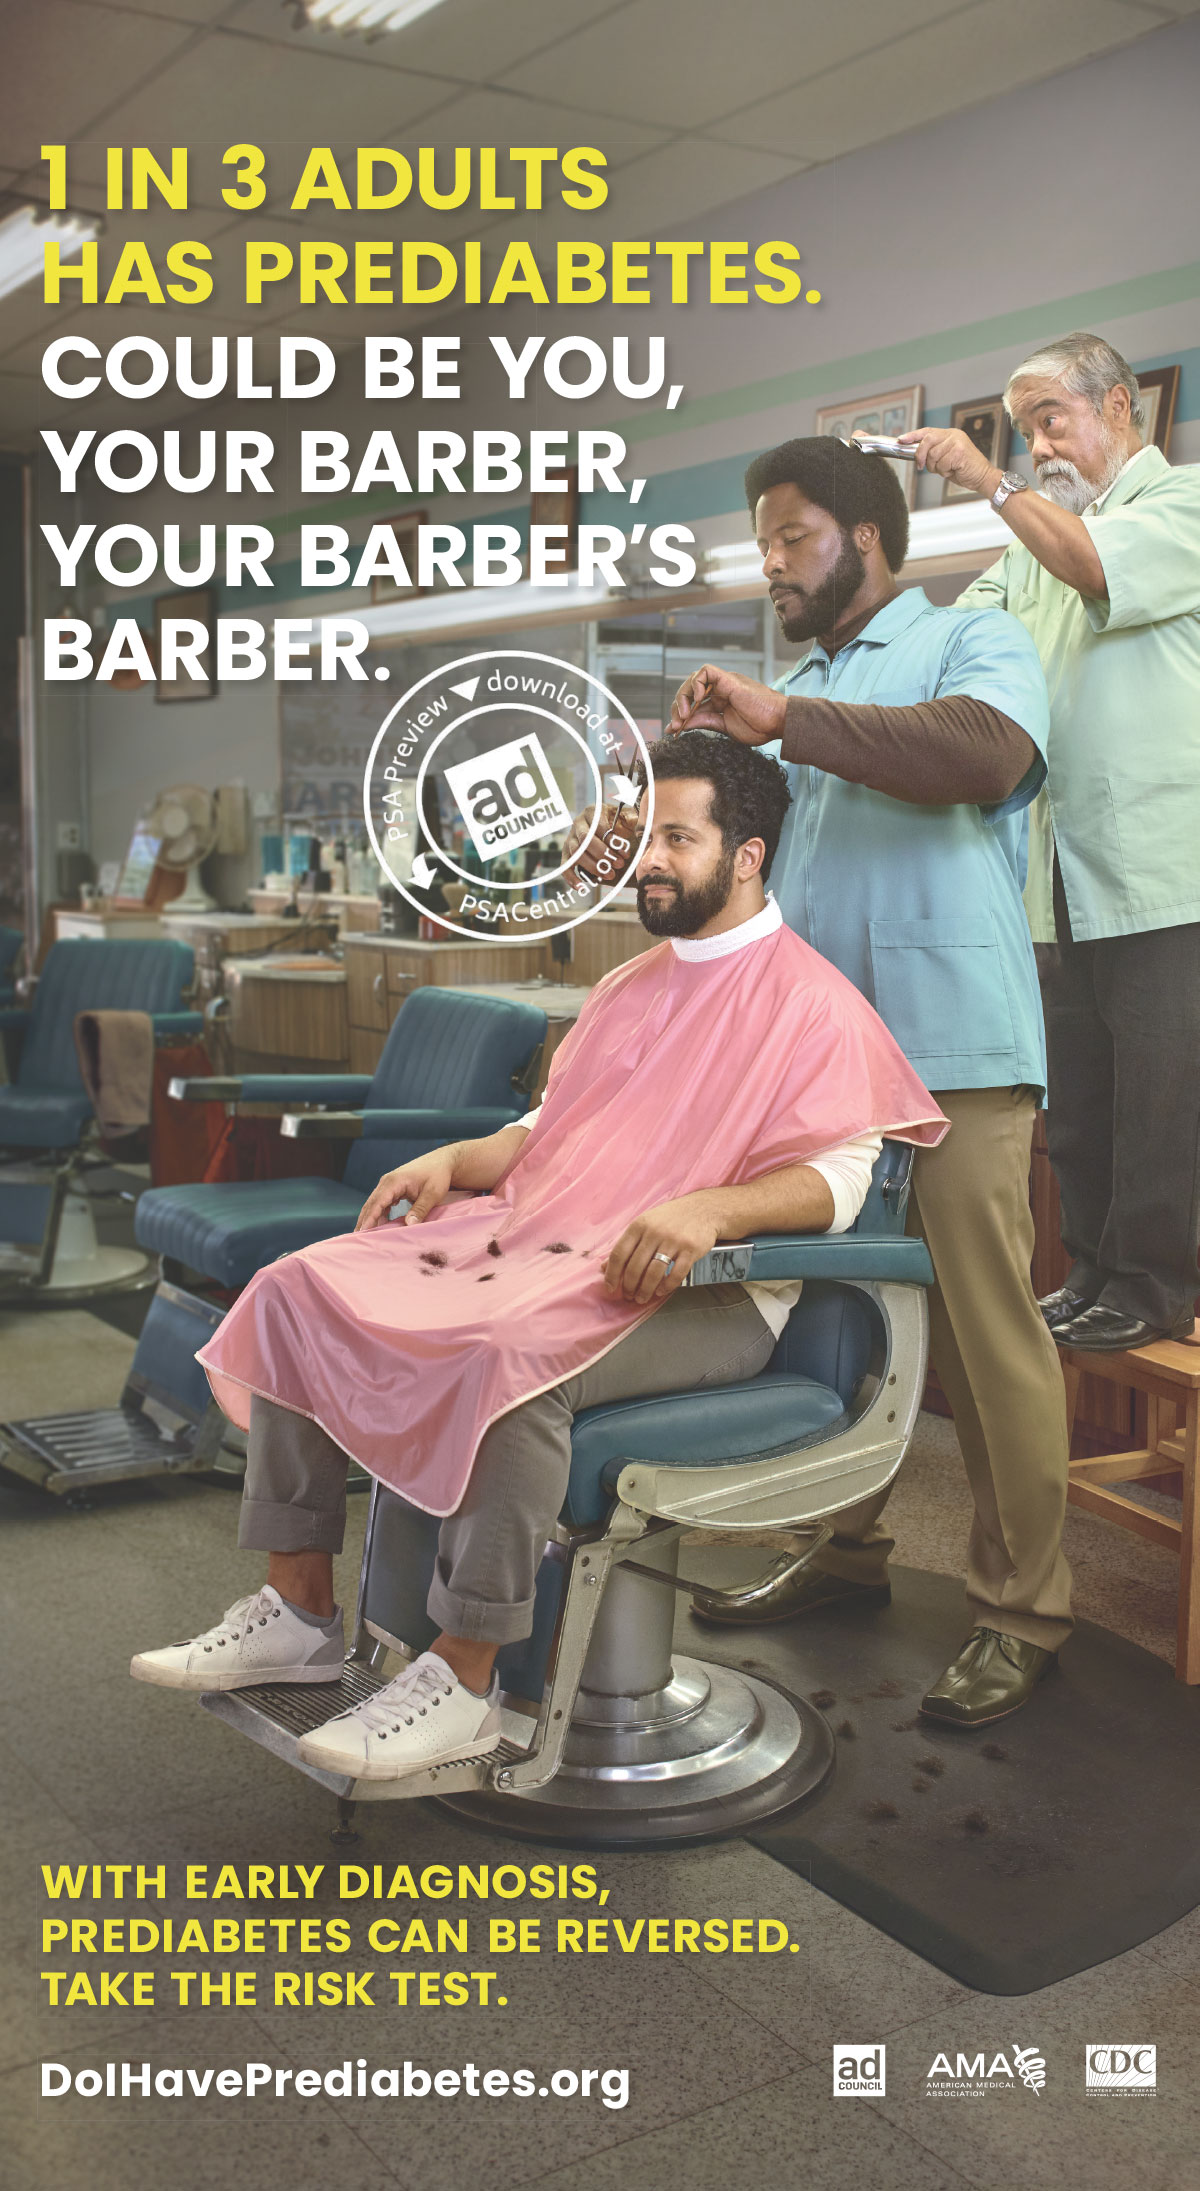 barbers_news_eng_4c_WM